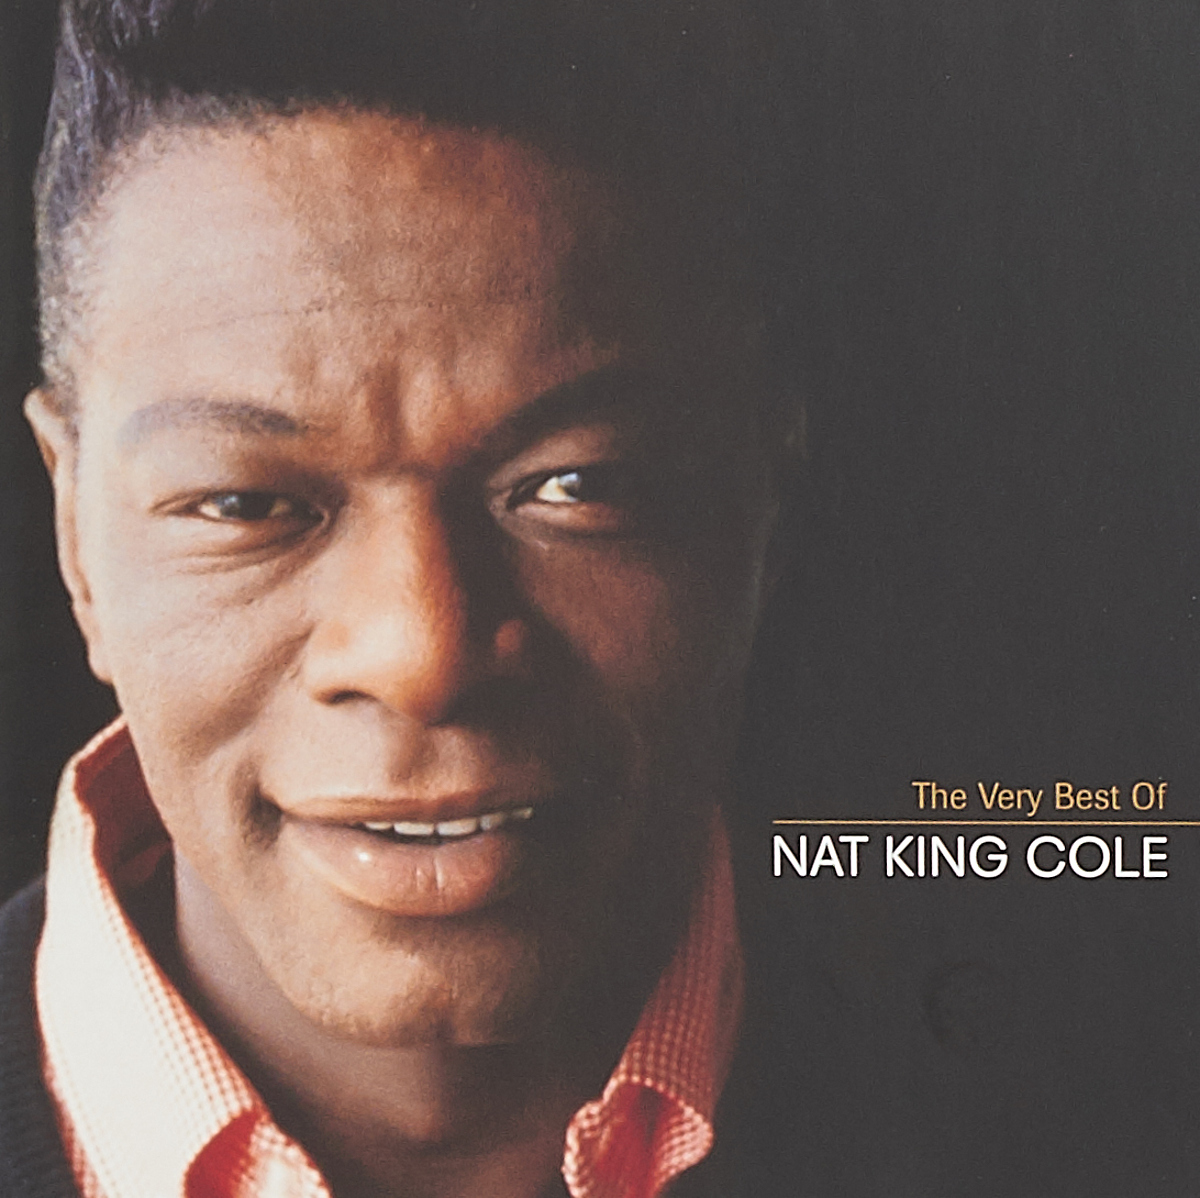 COLE, NAT KING. THE VERY BEST OF